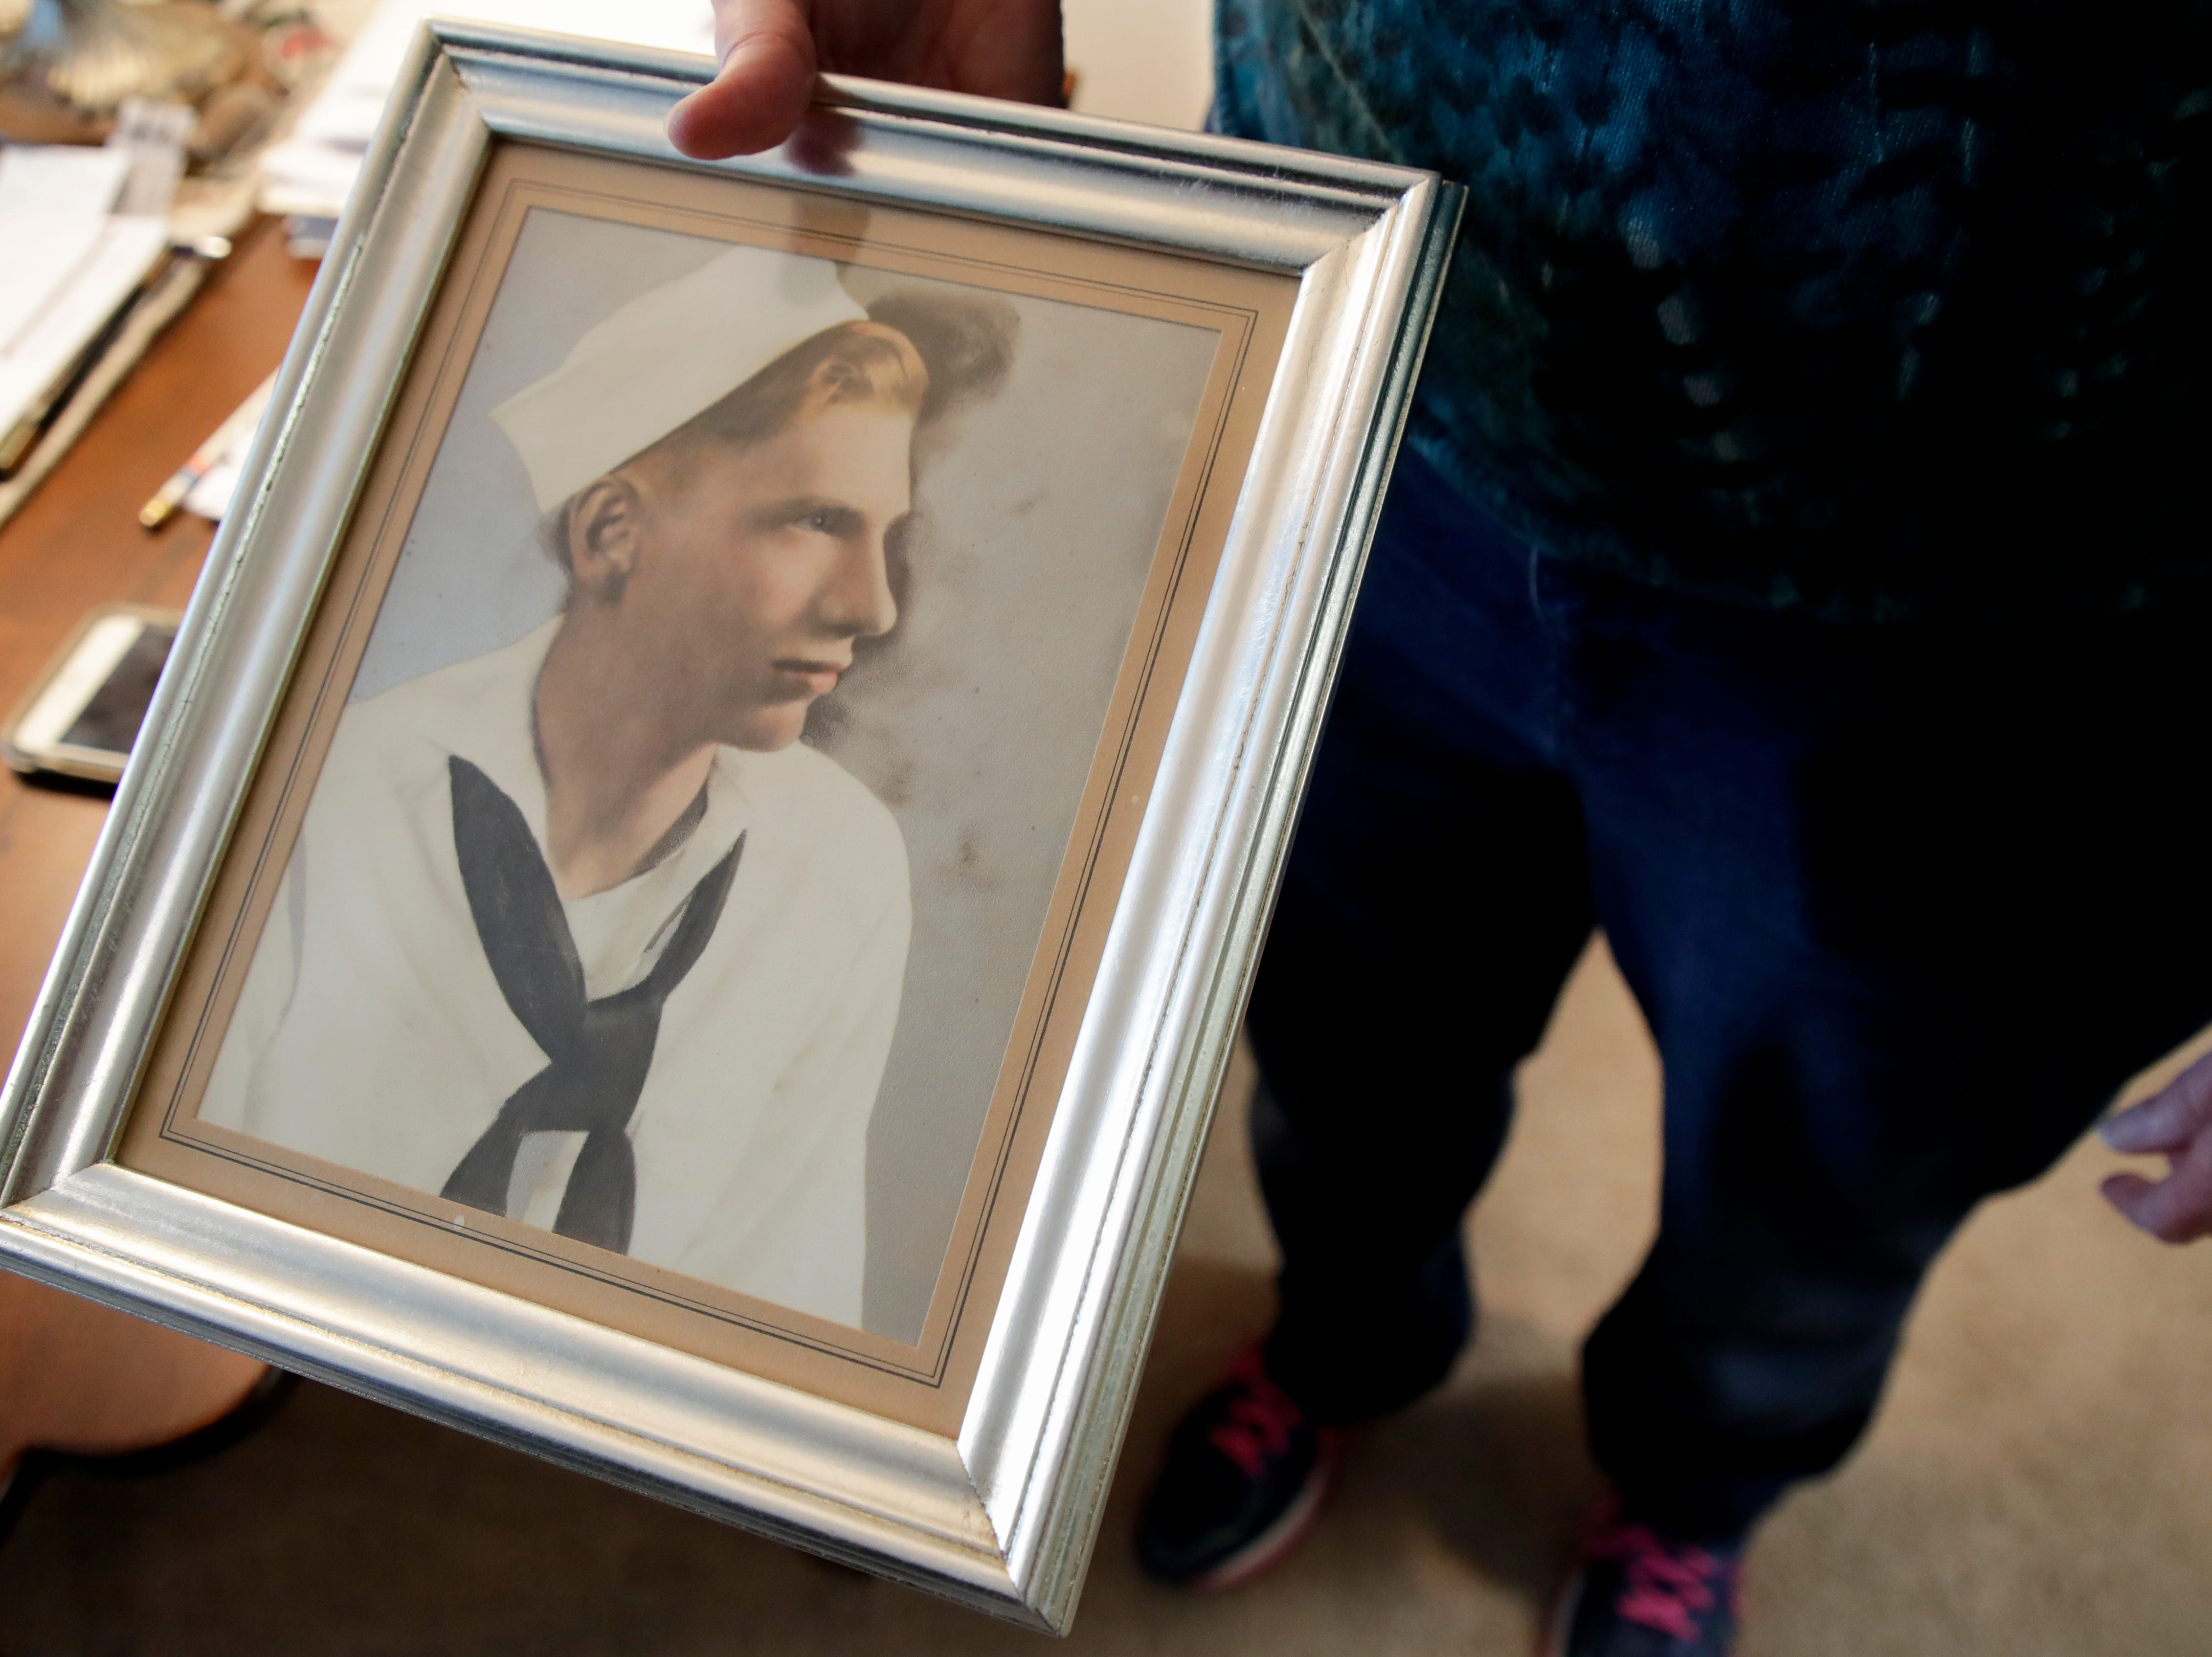 Sandy DeLopez holds a photo of the uncle she knew of her whole life but never met, Earl Baum, who died on the U.S.S. Oklahoma in Pearl Harbor December 7, 1941.